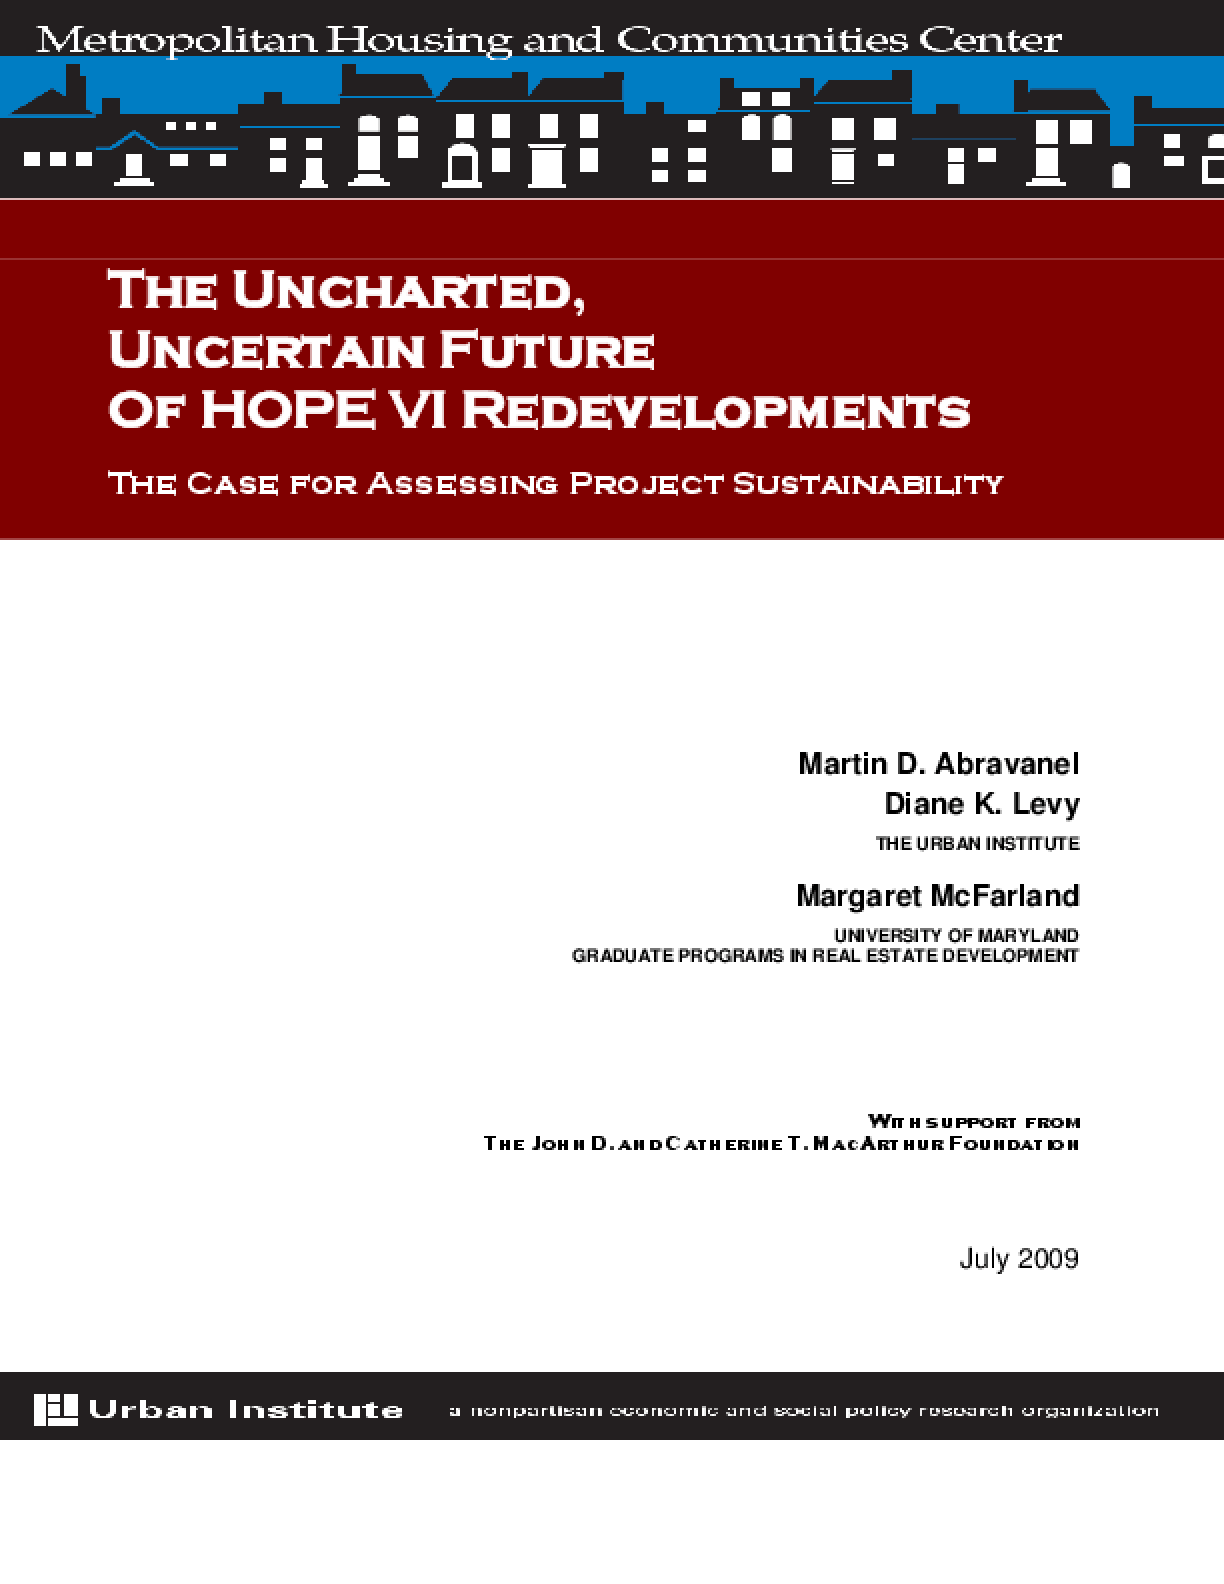 The Uncharted, Uncertain Future of HOPE VI Redevelopments: The Case for Assessing Project Sustainability